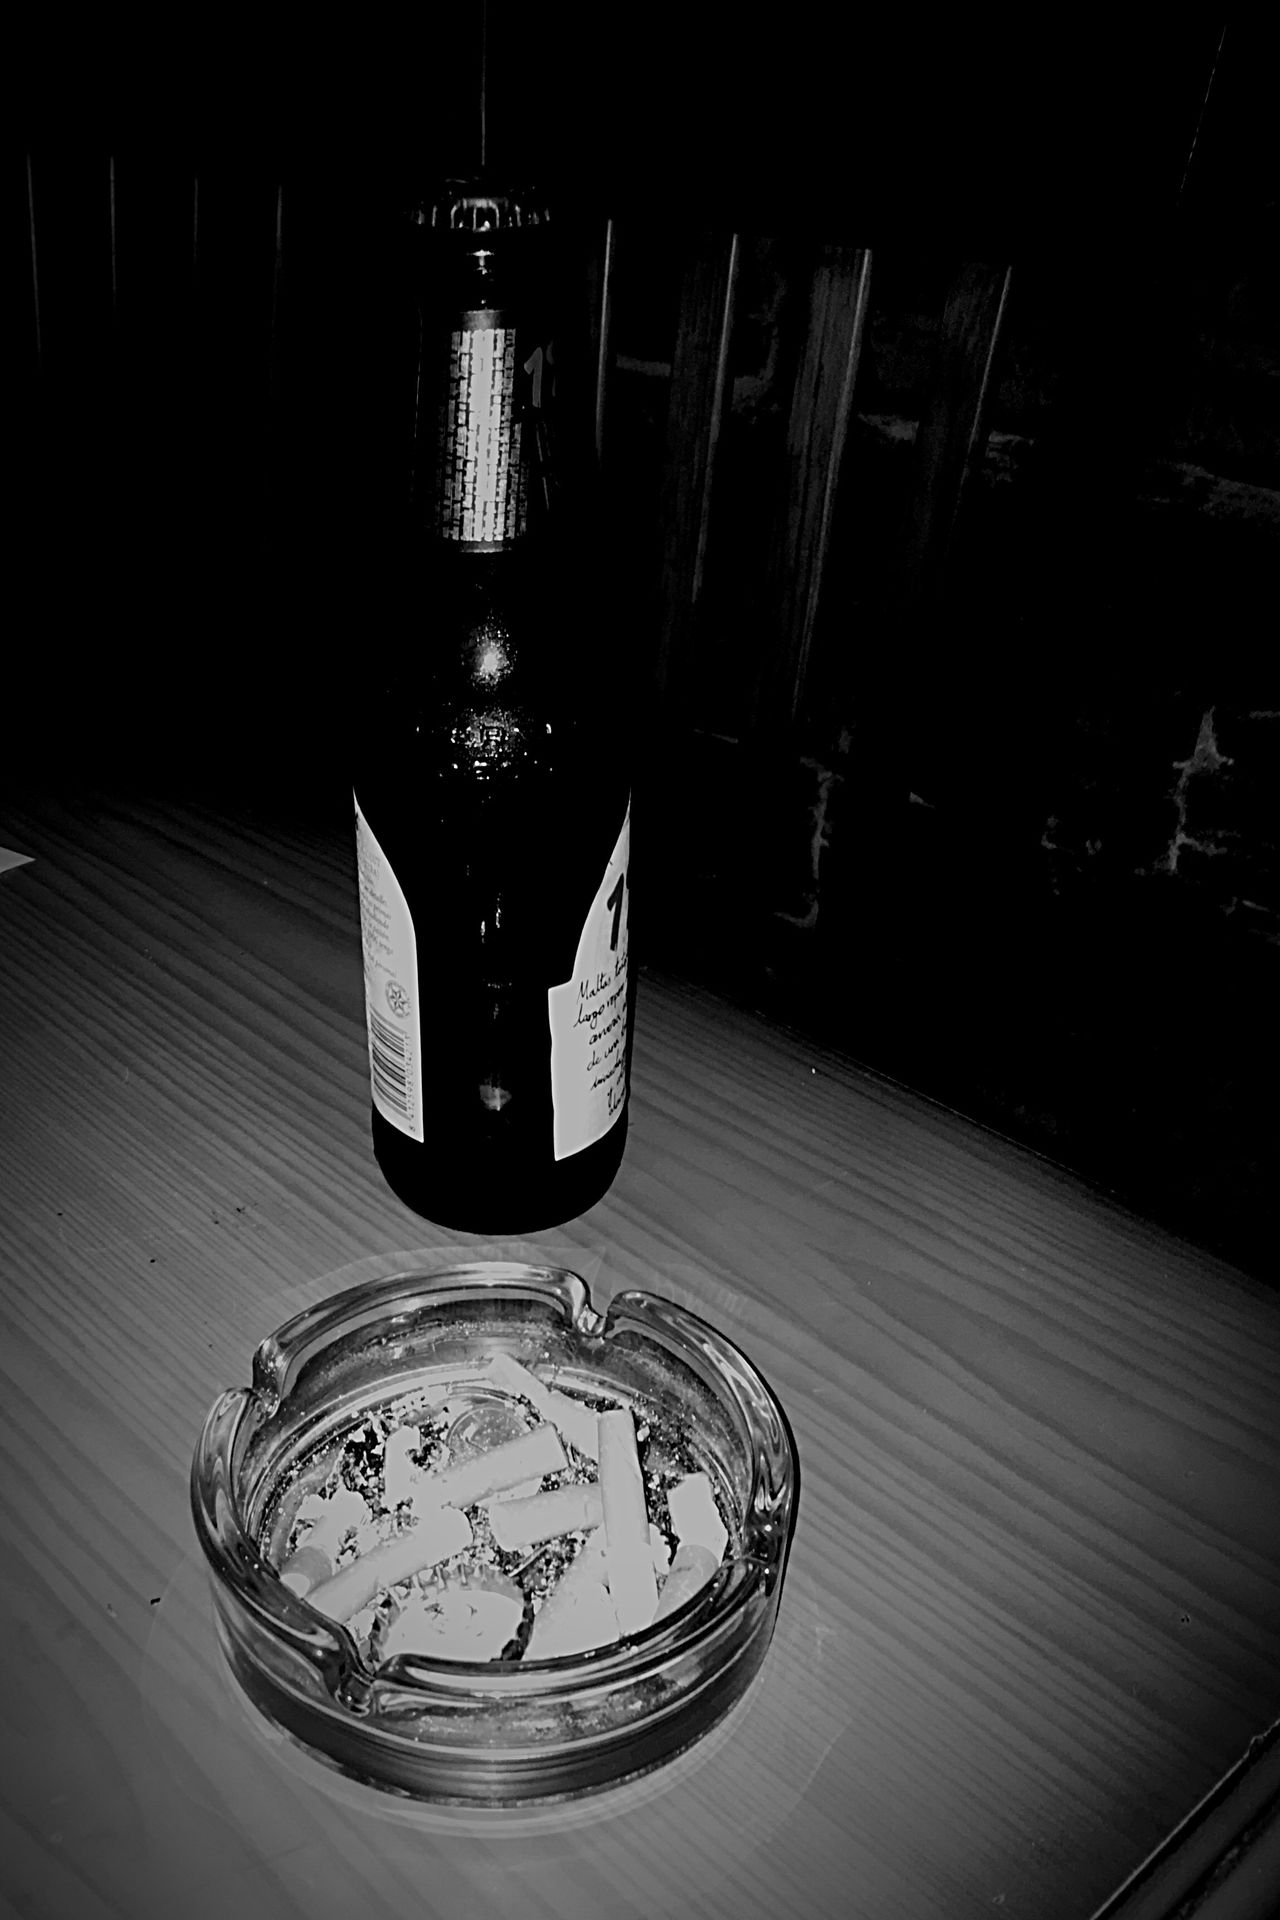 Goodnight World Sleepless Nights of Smoke And Alcohol 🙈🙉🙊 Taking Photos Blackandwhite Bnwportrait Black And White Collection  Bnw_captures Blackandwhite Photography Bnwphotography Black & White Welcome To My World EyeEm Bnw